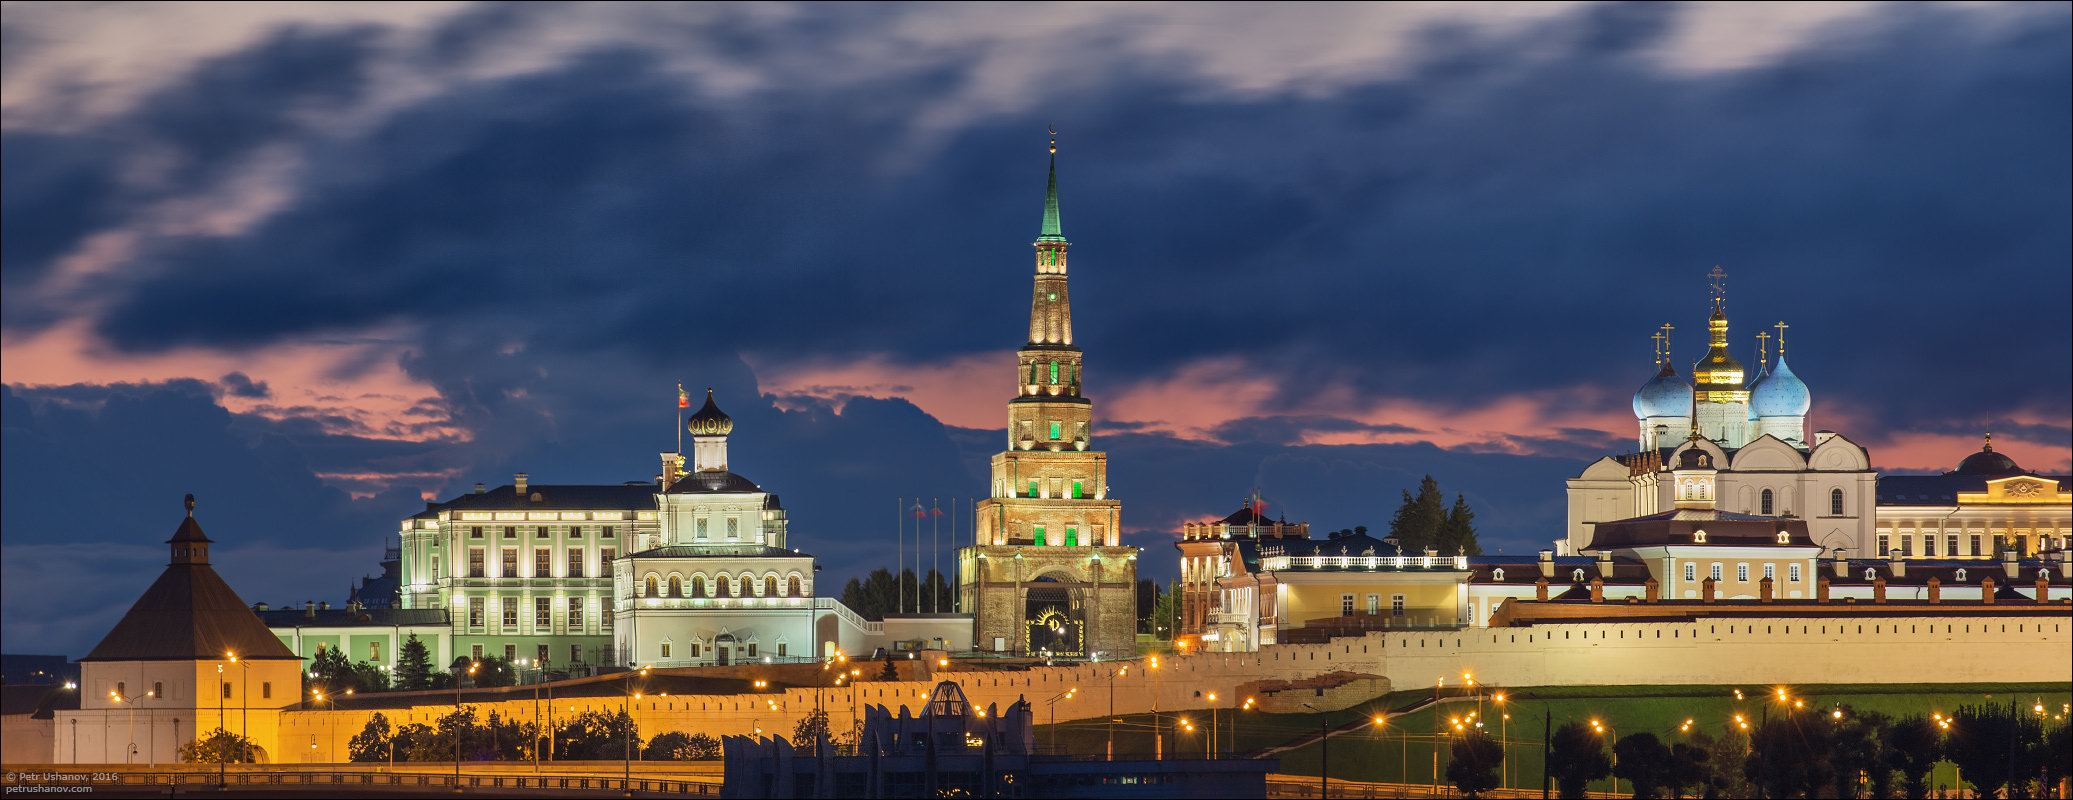 kazan kremlin and the fireworks on the city day 183 russia